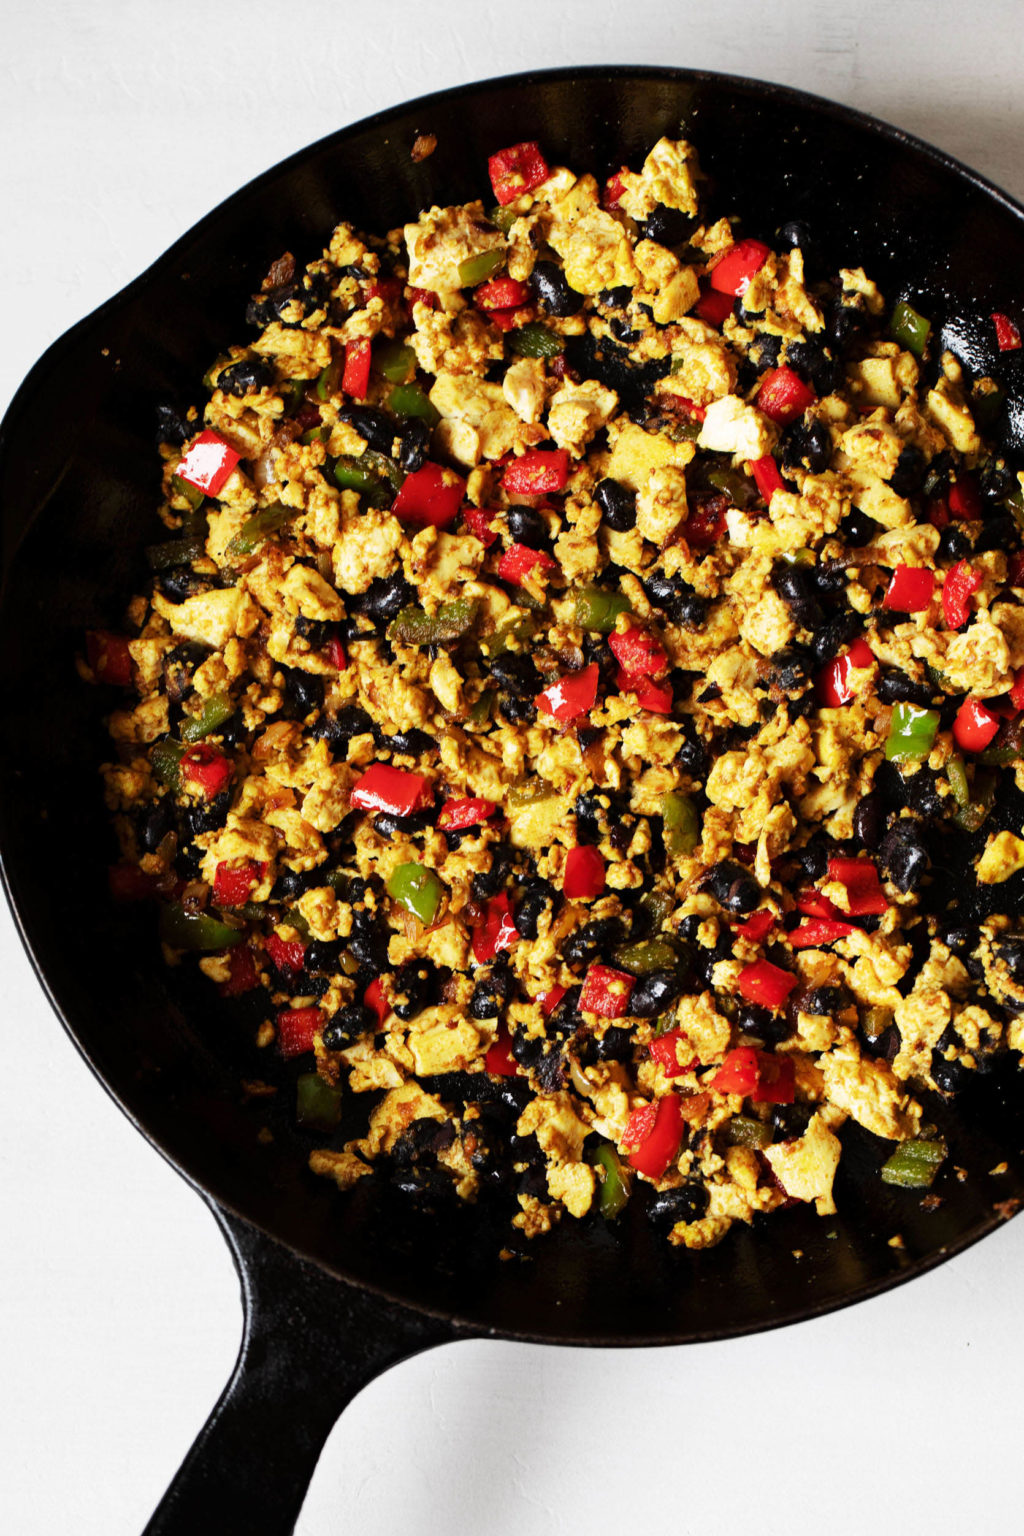 A black, cast iron skillet is filled with a mix of black beans, vegetables, and soy protein.